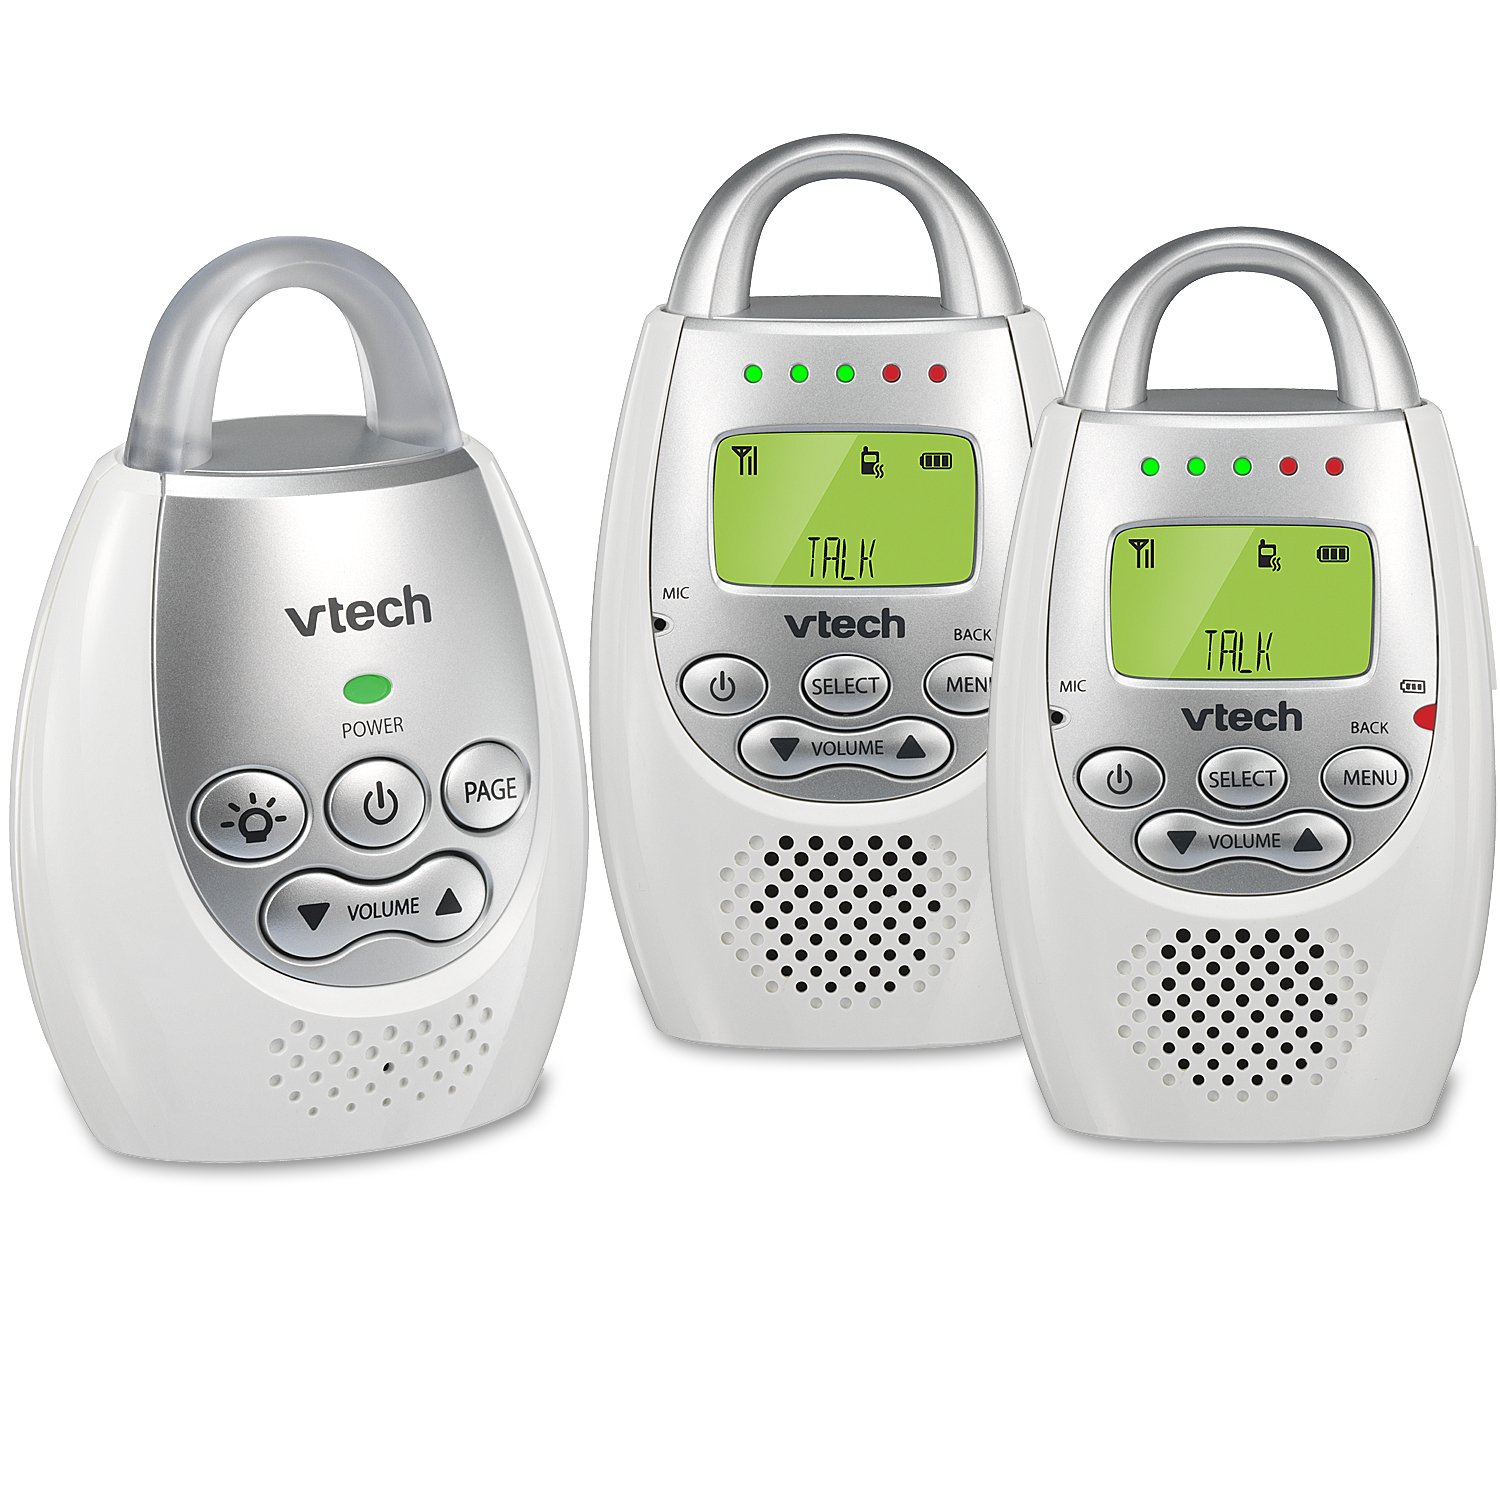 VTech DM221 2 Vibrating Sound Alert Intercom